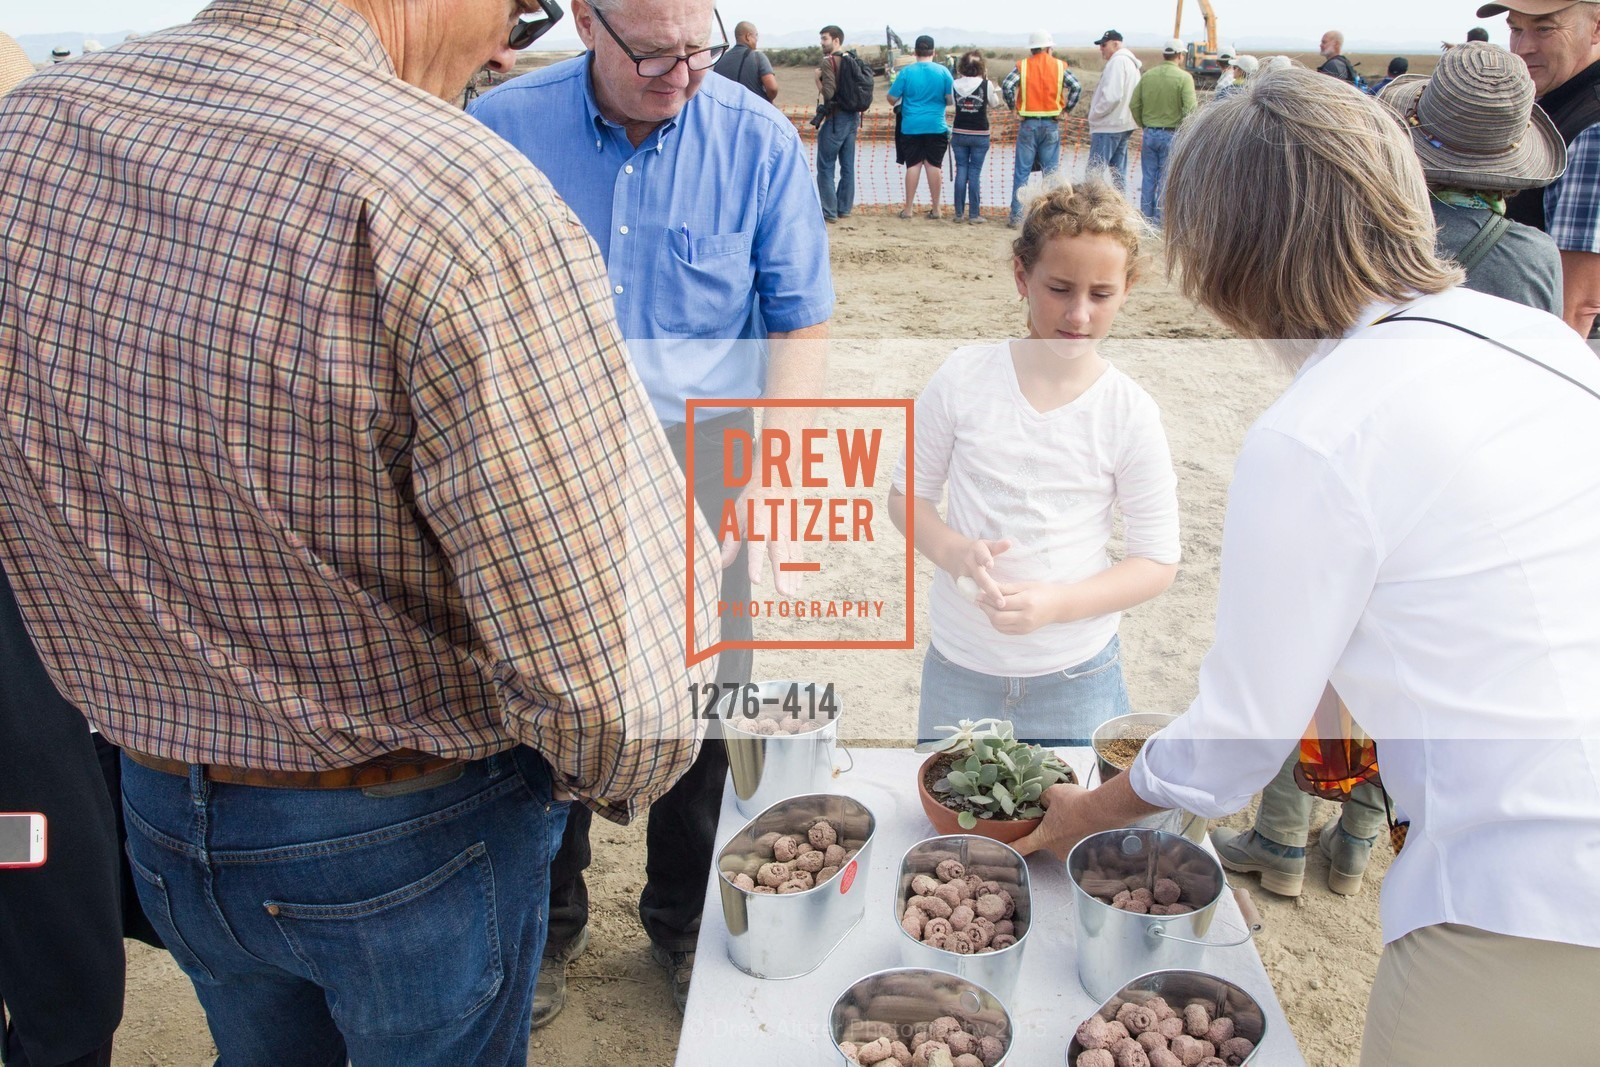 Extras, SEA CHANGE at Sears Point with Sonoma Land Trust, October 25th, 2015, Photo,Drew Altizer, Drew Altizer Photography, full-service event agency, private events, San Francisco photographer, photographer California